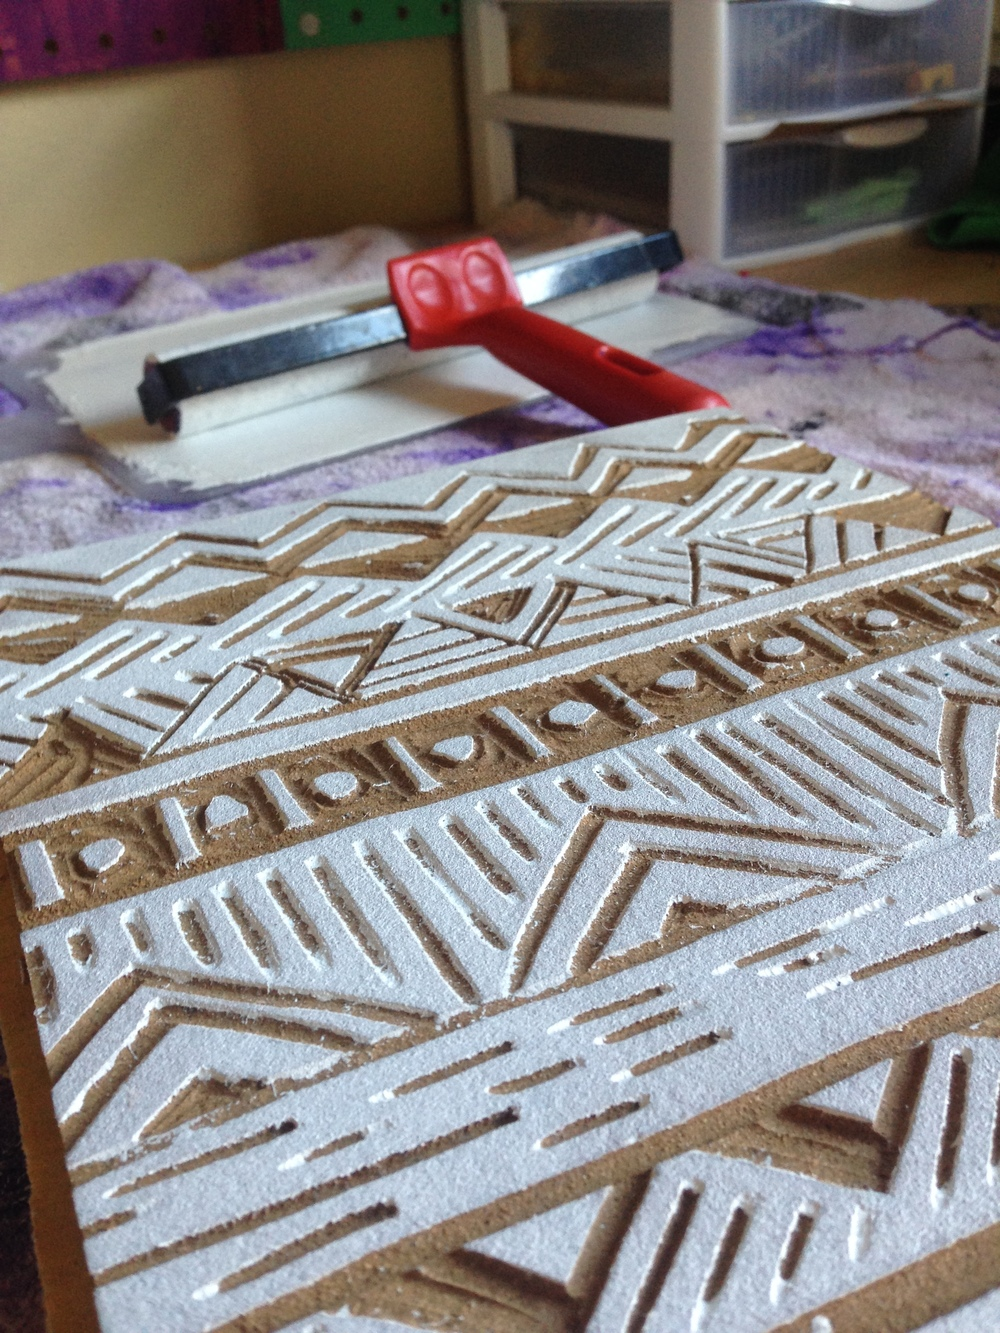 A newly carved block, ready to be inked